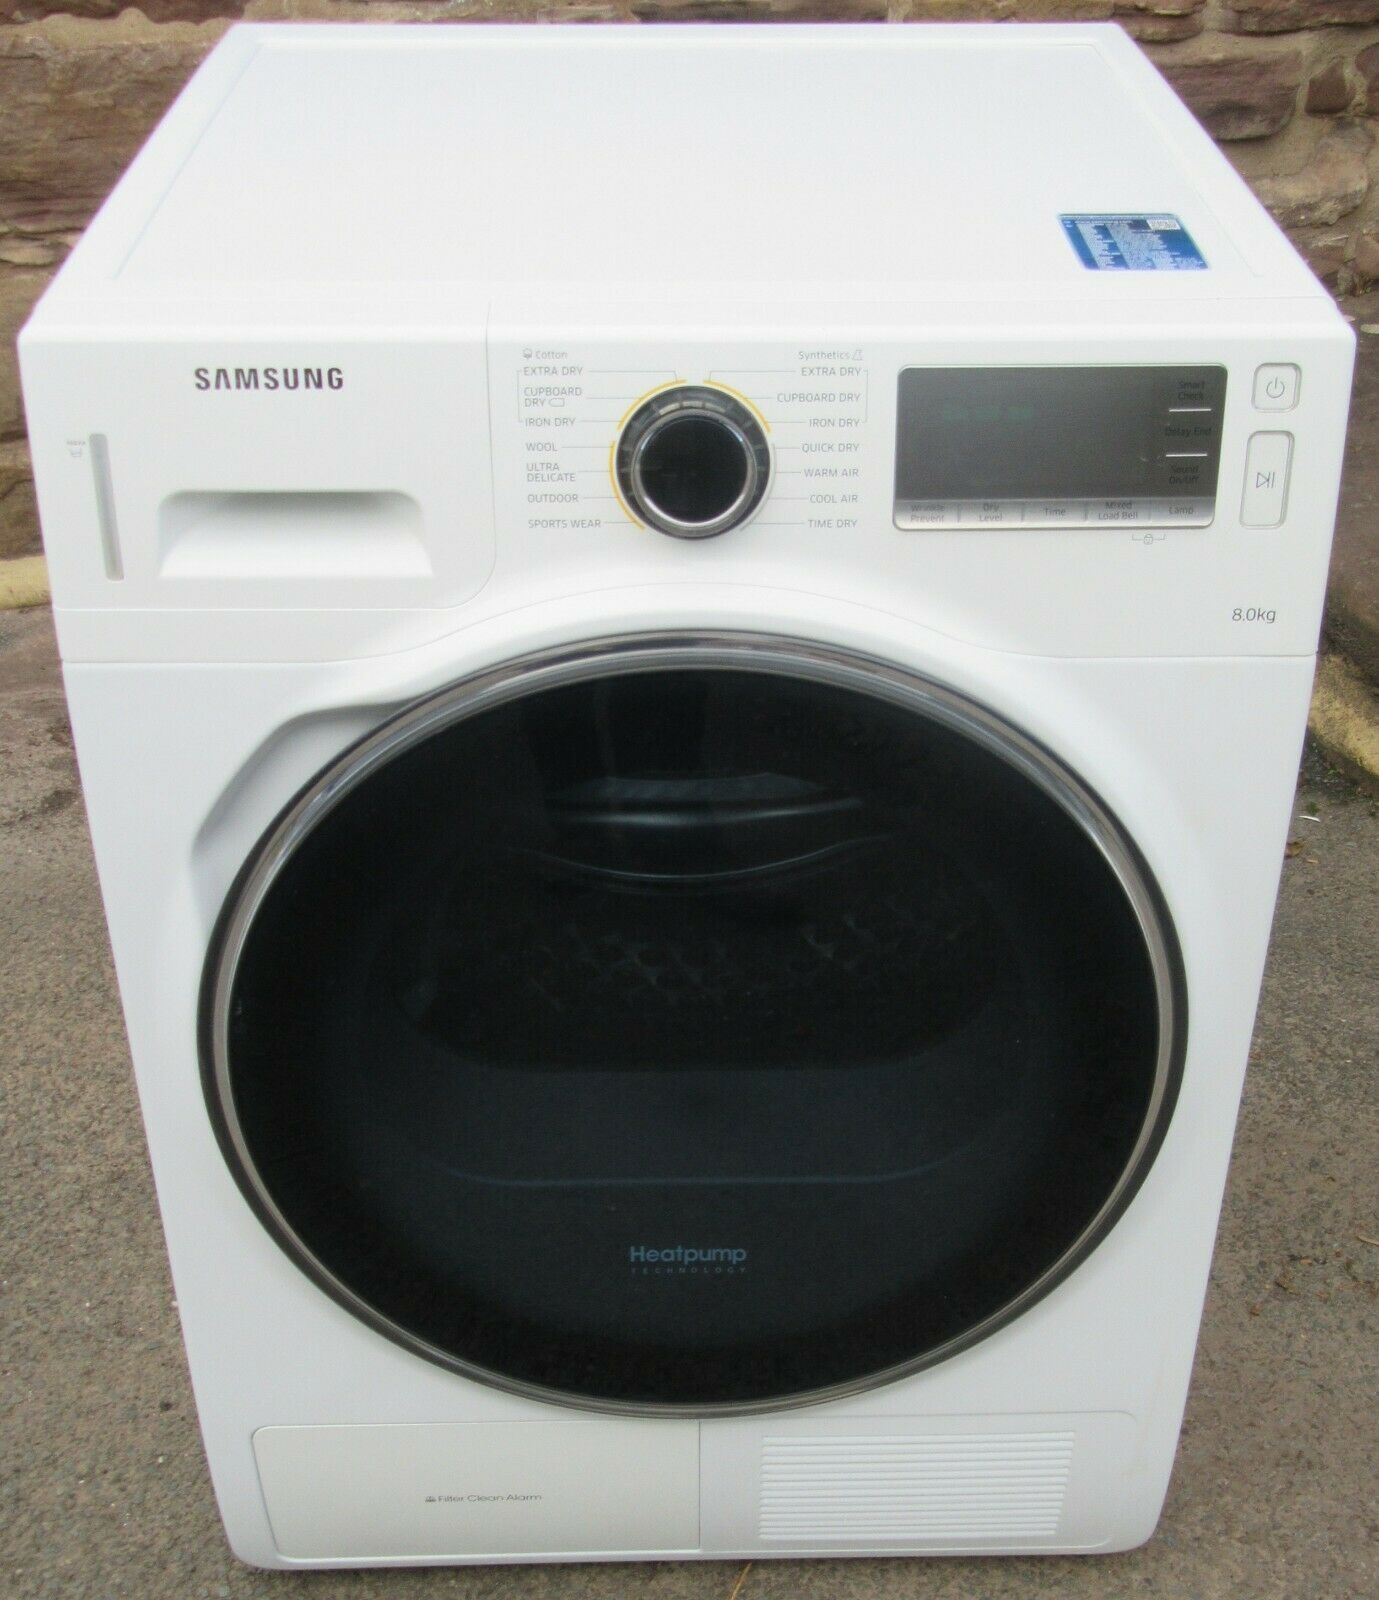 SAMSUNG DV80H8100HW , 8kg A++ ENERGY HEAT PUMP dryer, 12M warranty!* RRP £729 *5